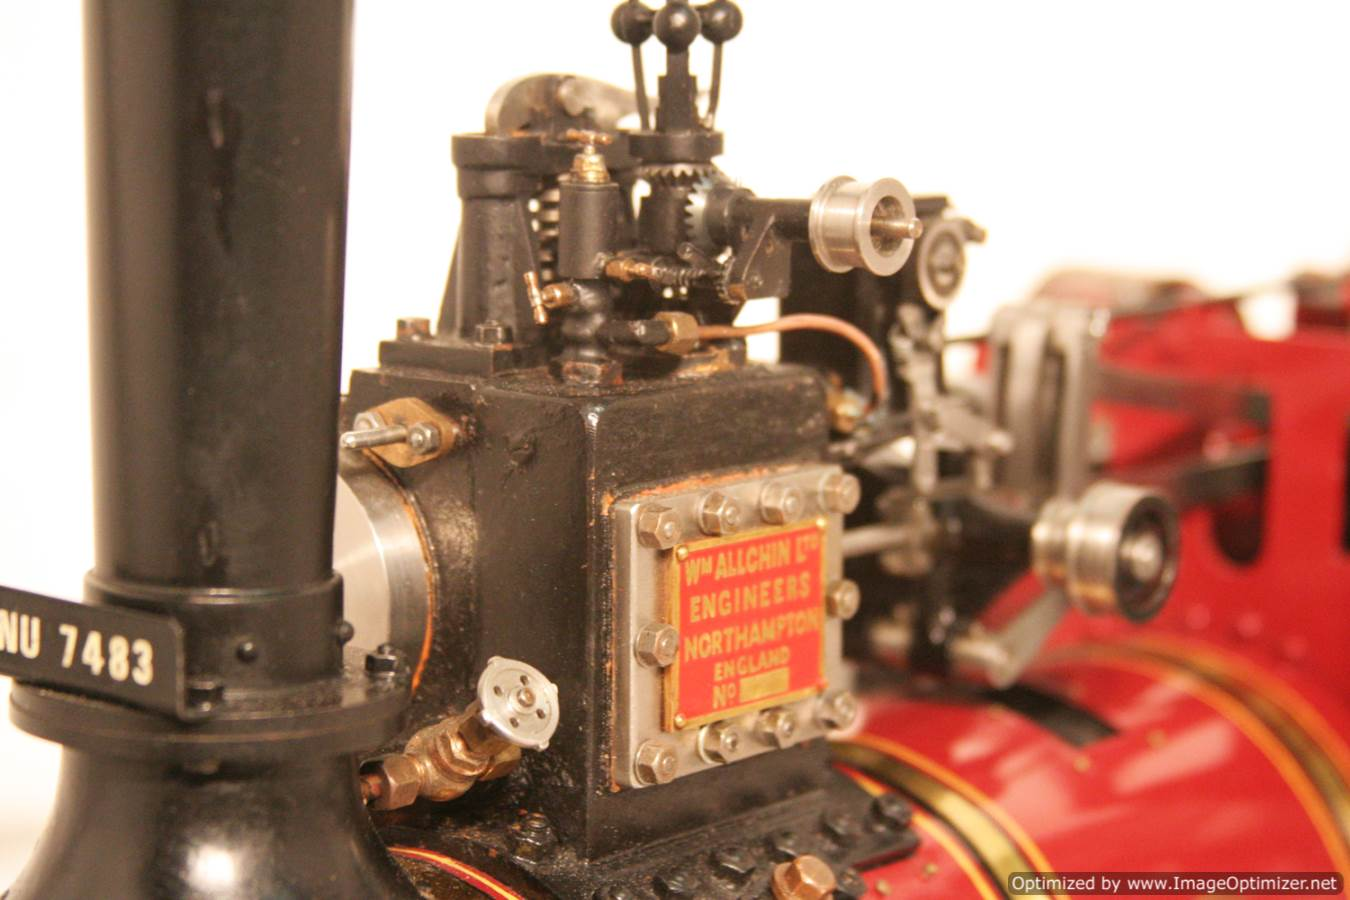 test Royal Chester Alchin Traction Engine for sale 21 Optimized